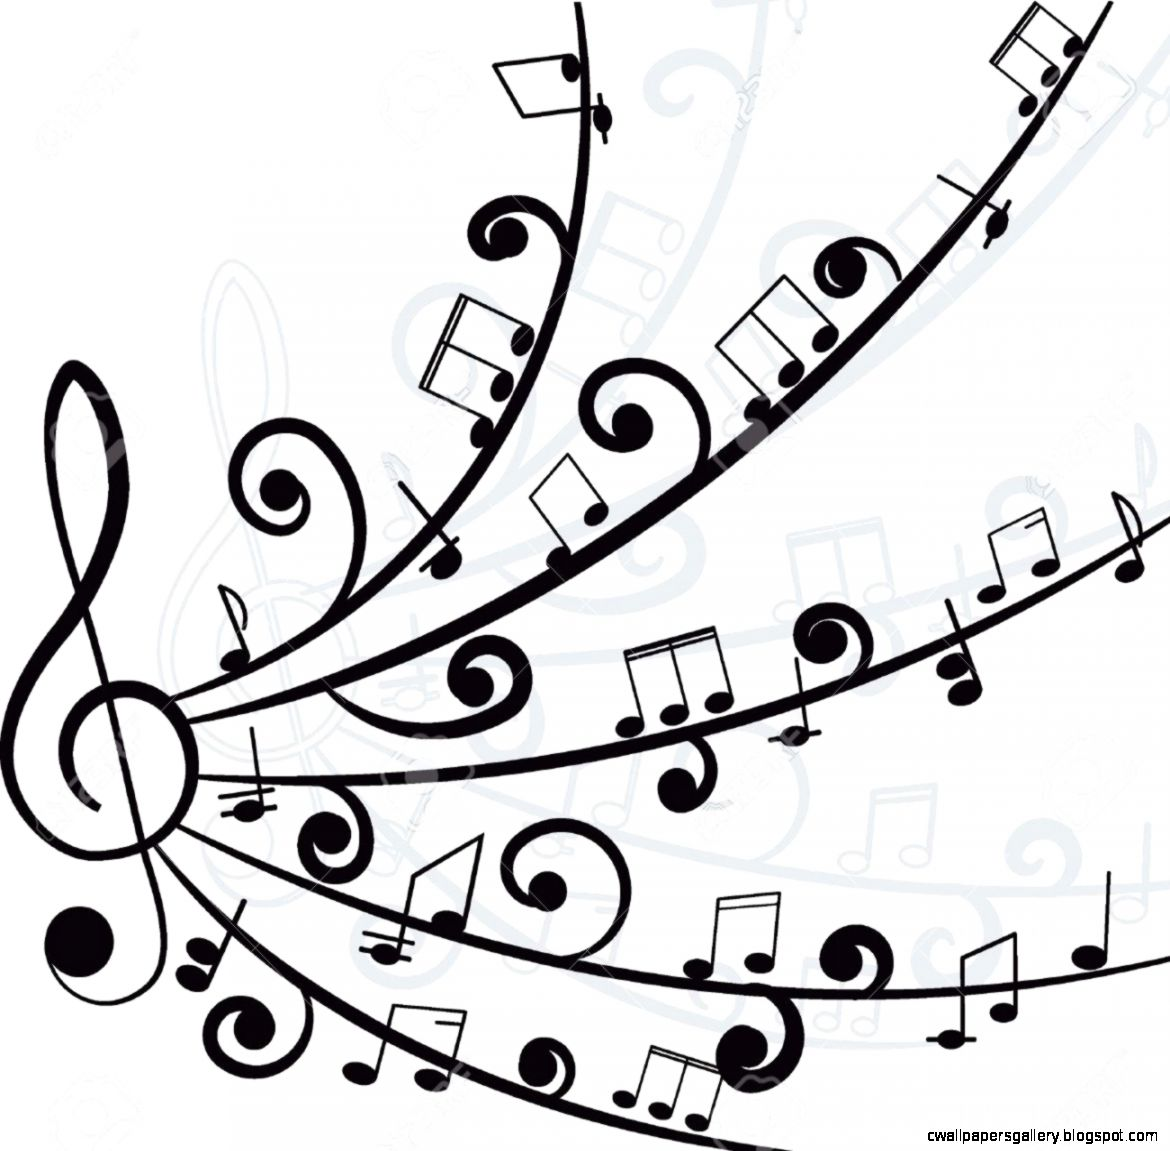 1170x1151 Cool Music Designs Black And White Wallpapers Gallery